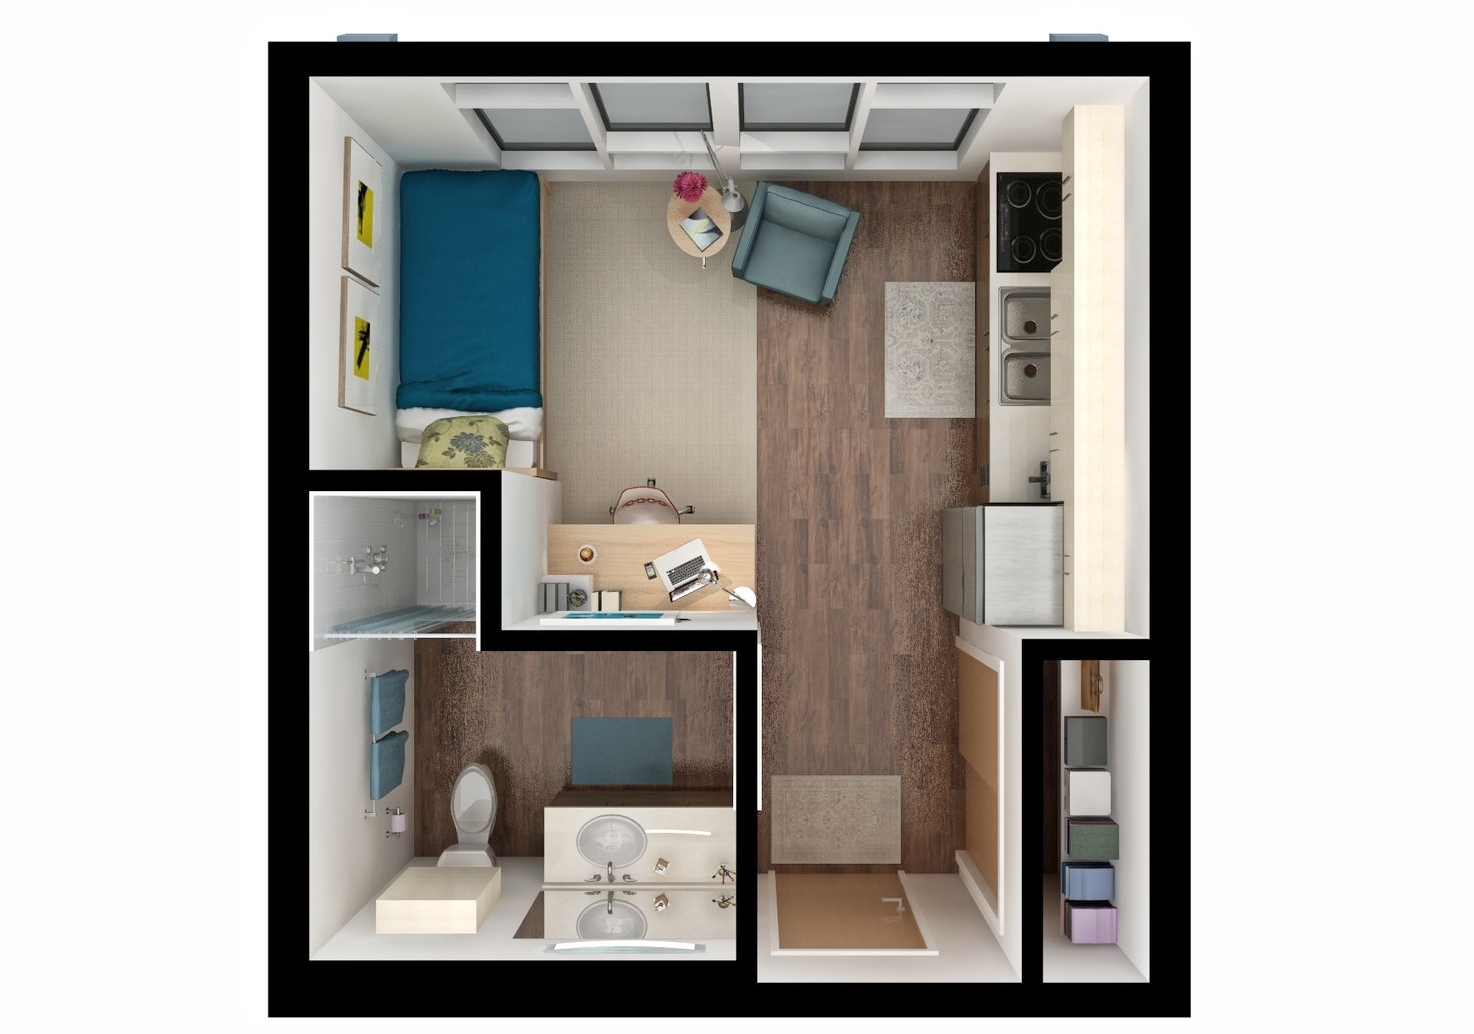 Studio bedroom rendering